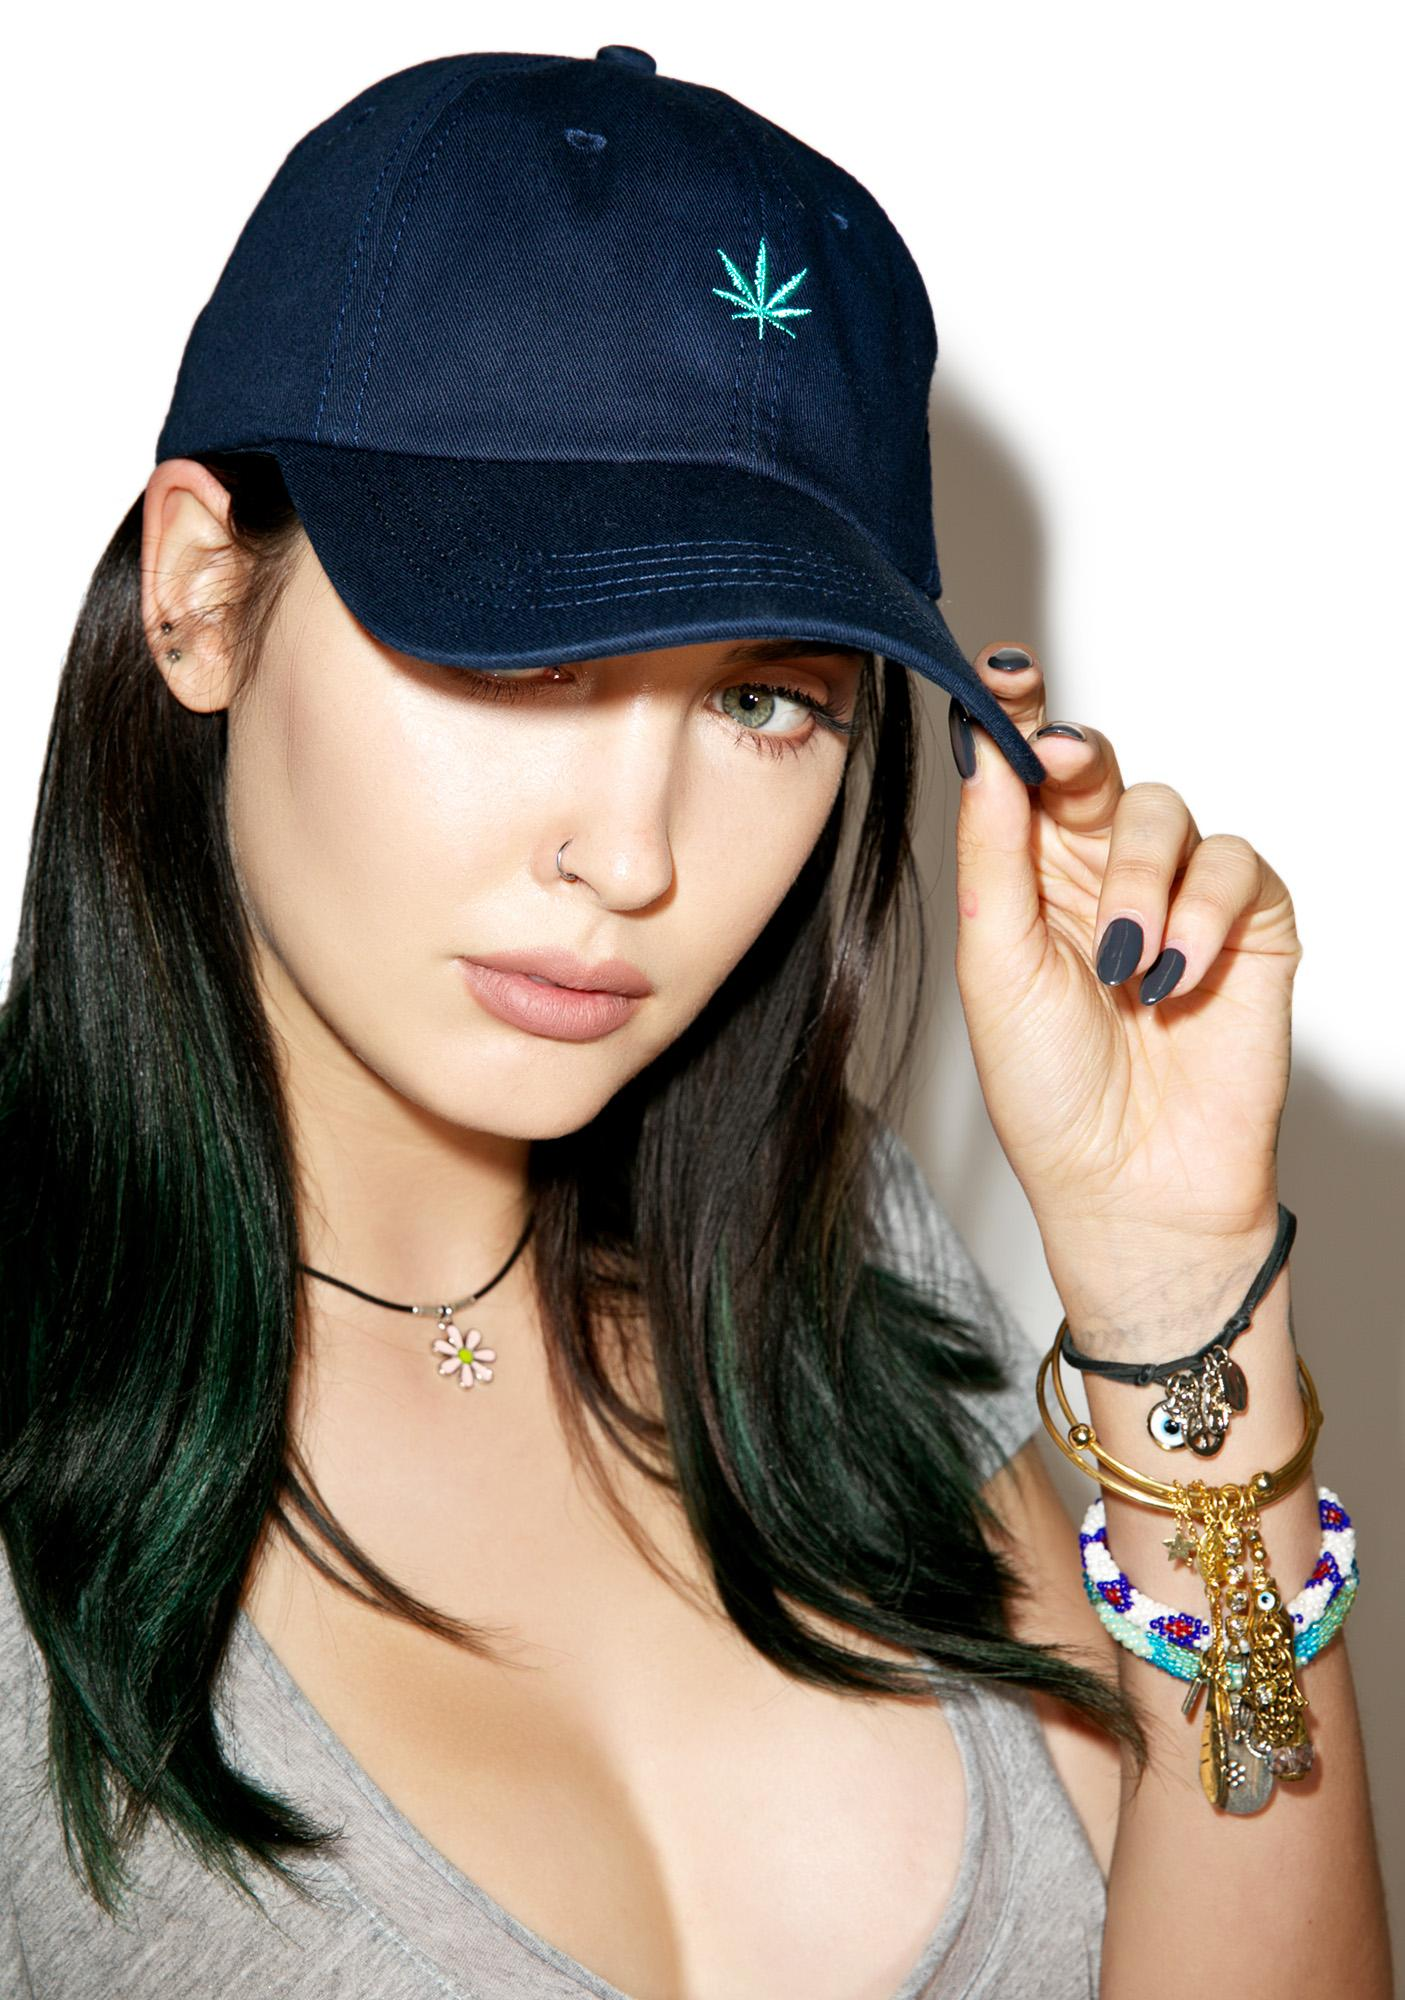 babe with weed hat megan fox style